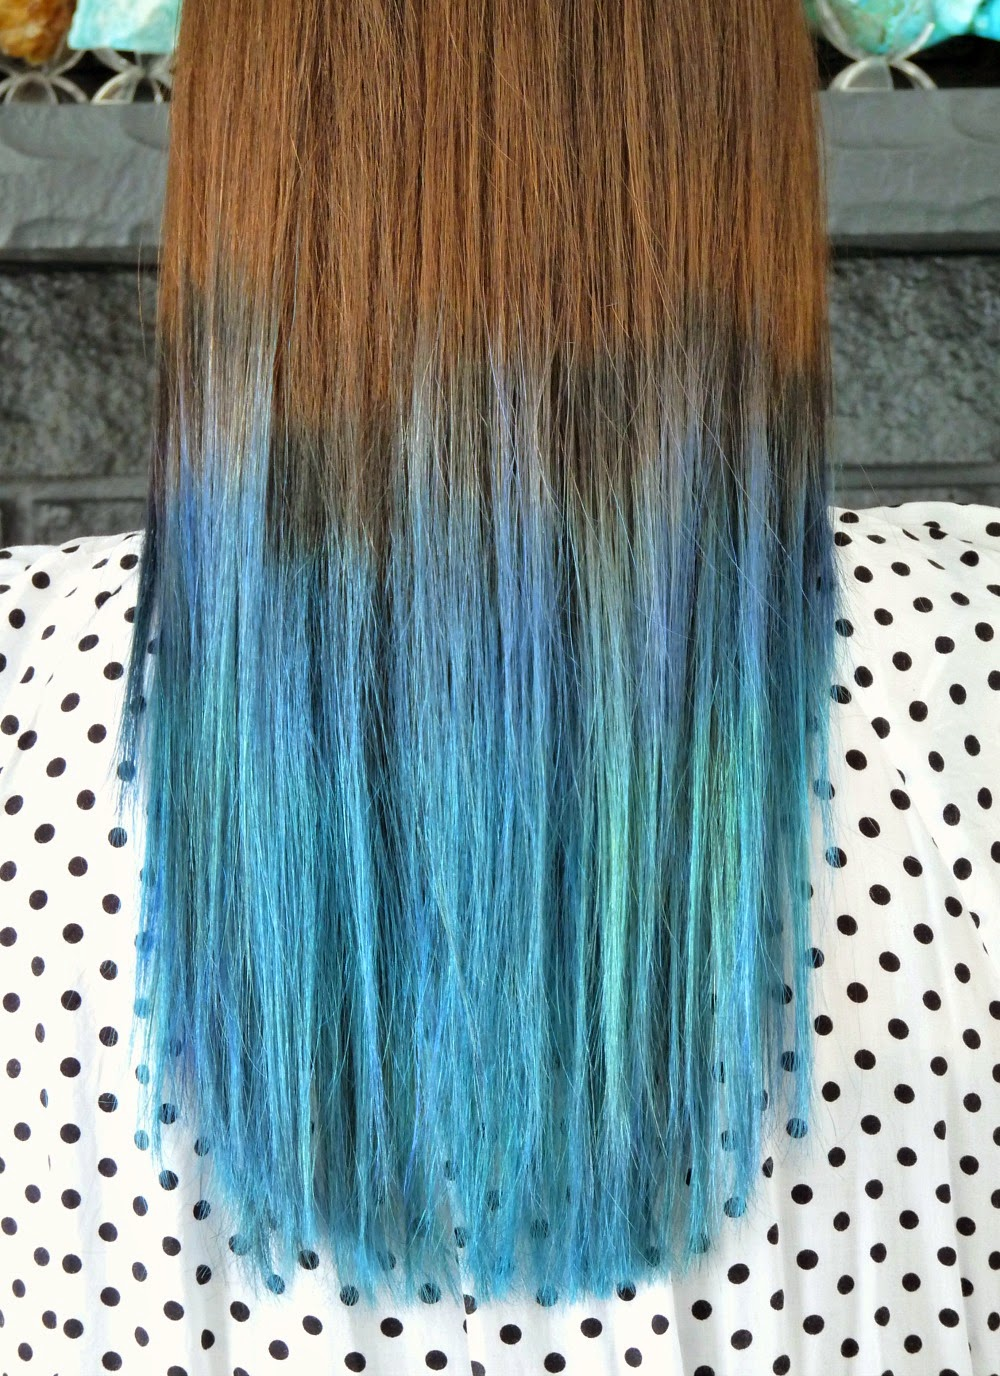 Teal And Blue Ombre Rainbow Hair On Brunette ...